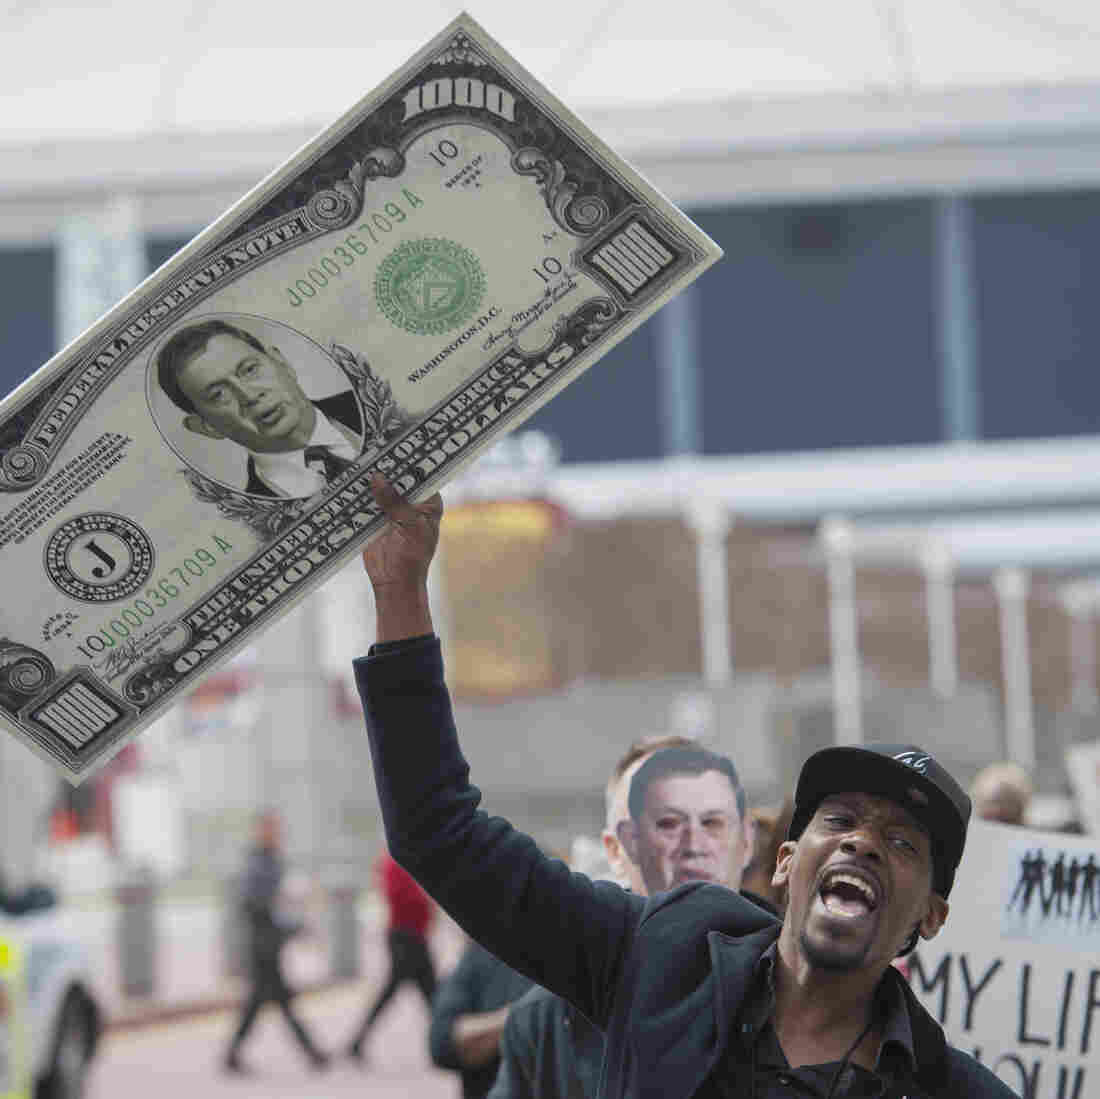 Timothy Webb and other advocates protest the cost of HIV drugs manufactured by the pharmaceutical company Gilead outside an AIDS conference in Atlanta in March. Gilead is making a new hepatitis C drug, Sovaldi.